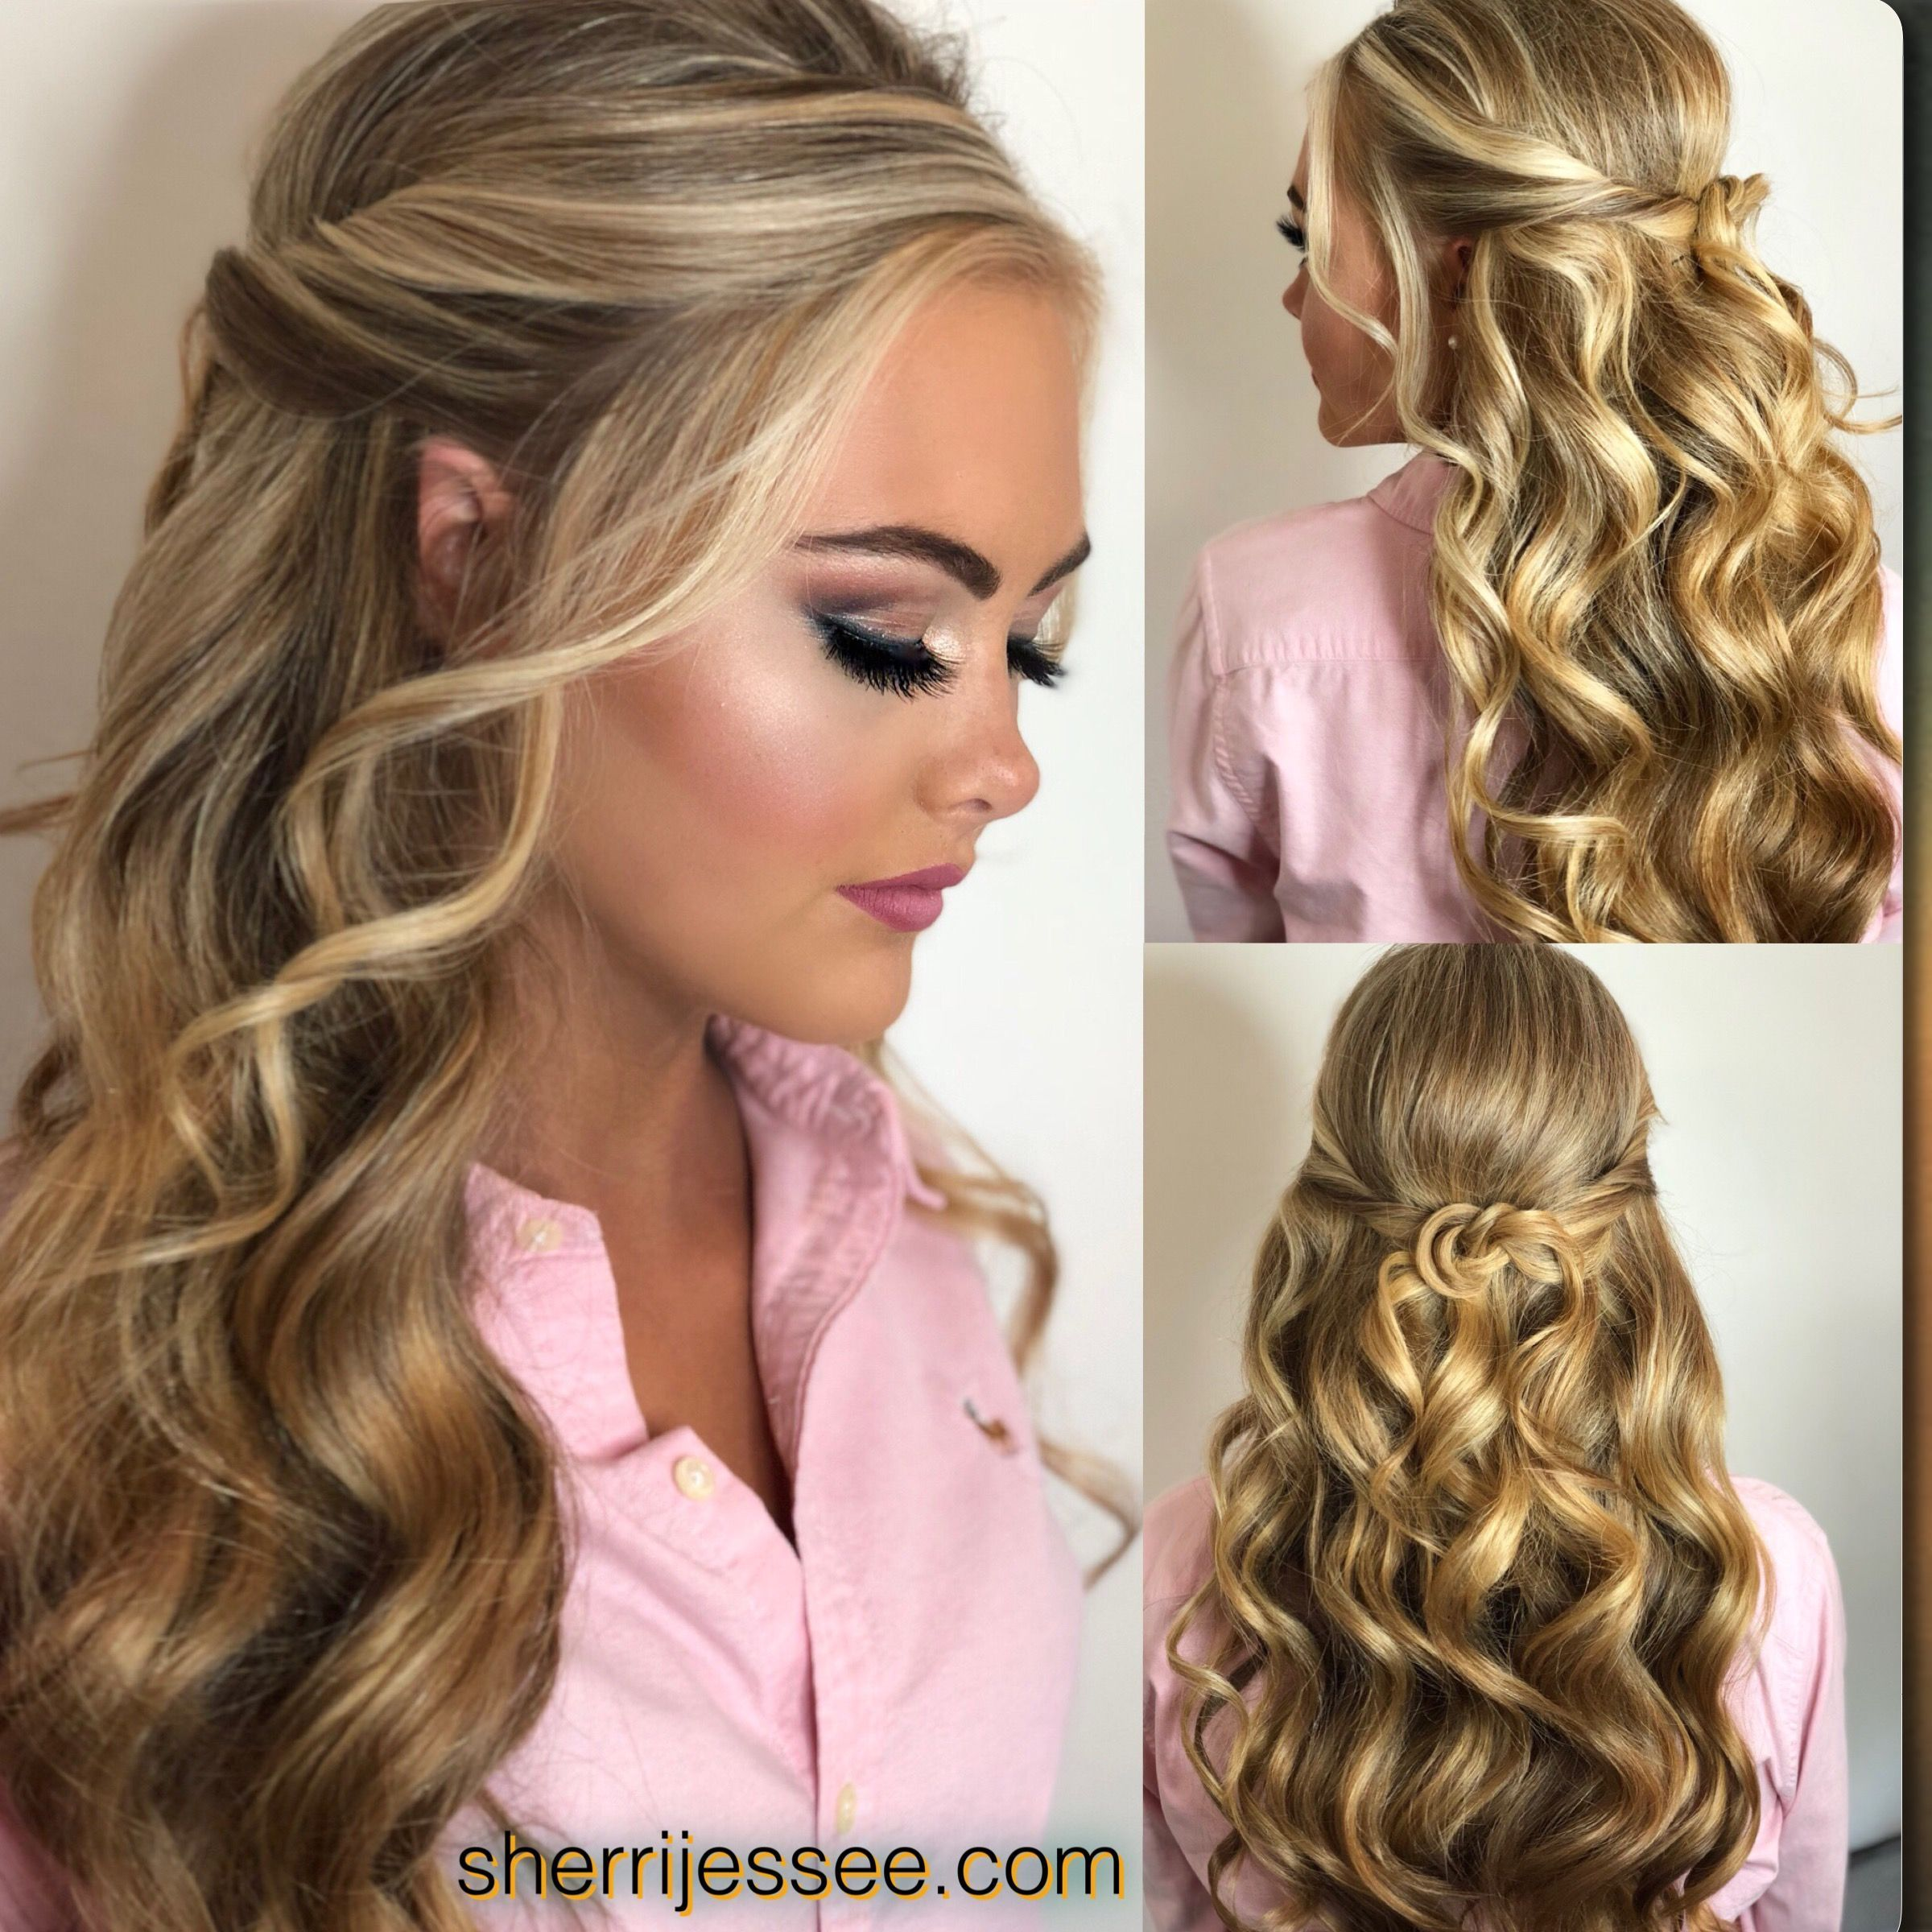 Google Image Result For Https Www Ocontexto Com Wp Content Uploads 2019 03 Half Up Half Down Curly Prom Hair Down Pageant Hair Prom Hairstyles For Long Hair